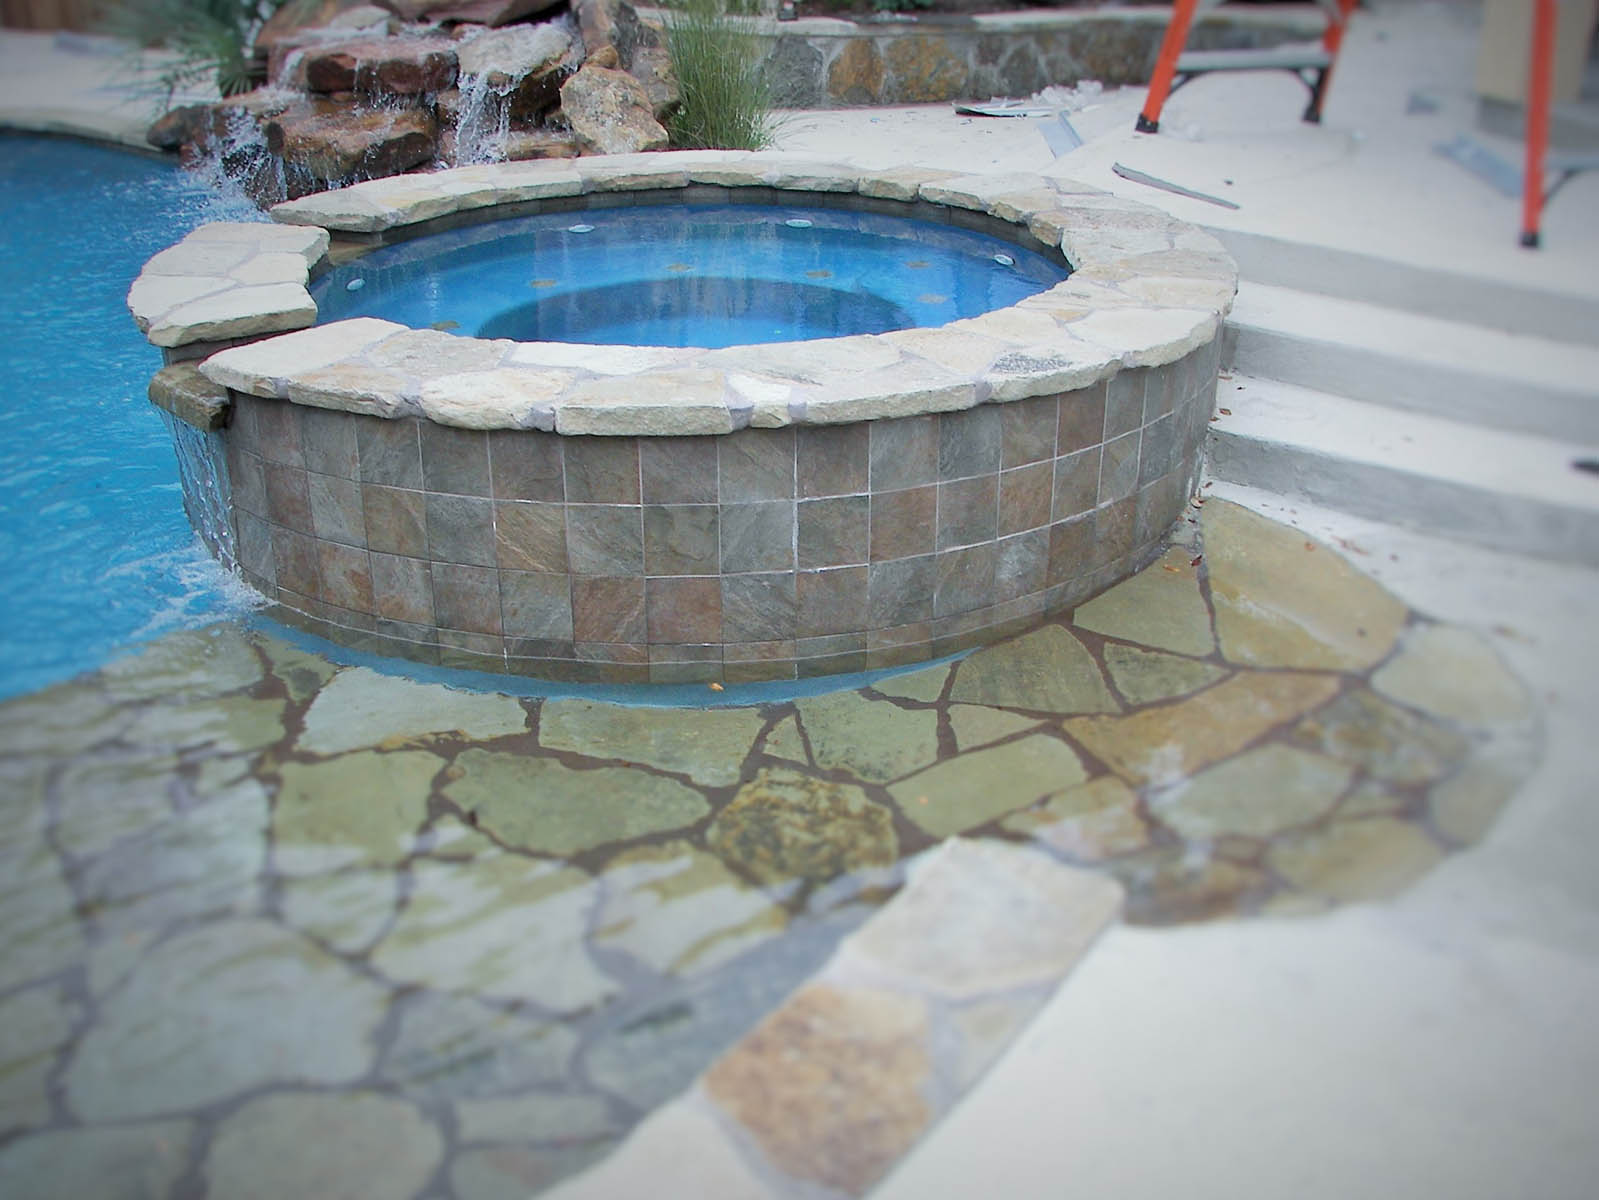 Picture gallery of spas hot tubs in bryan college station tx for Custom pool and spa